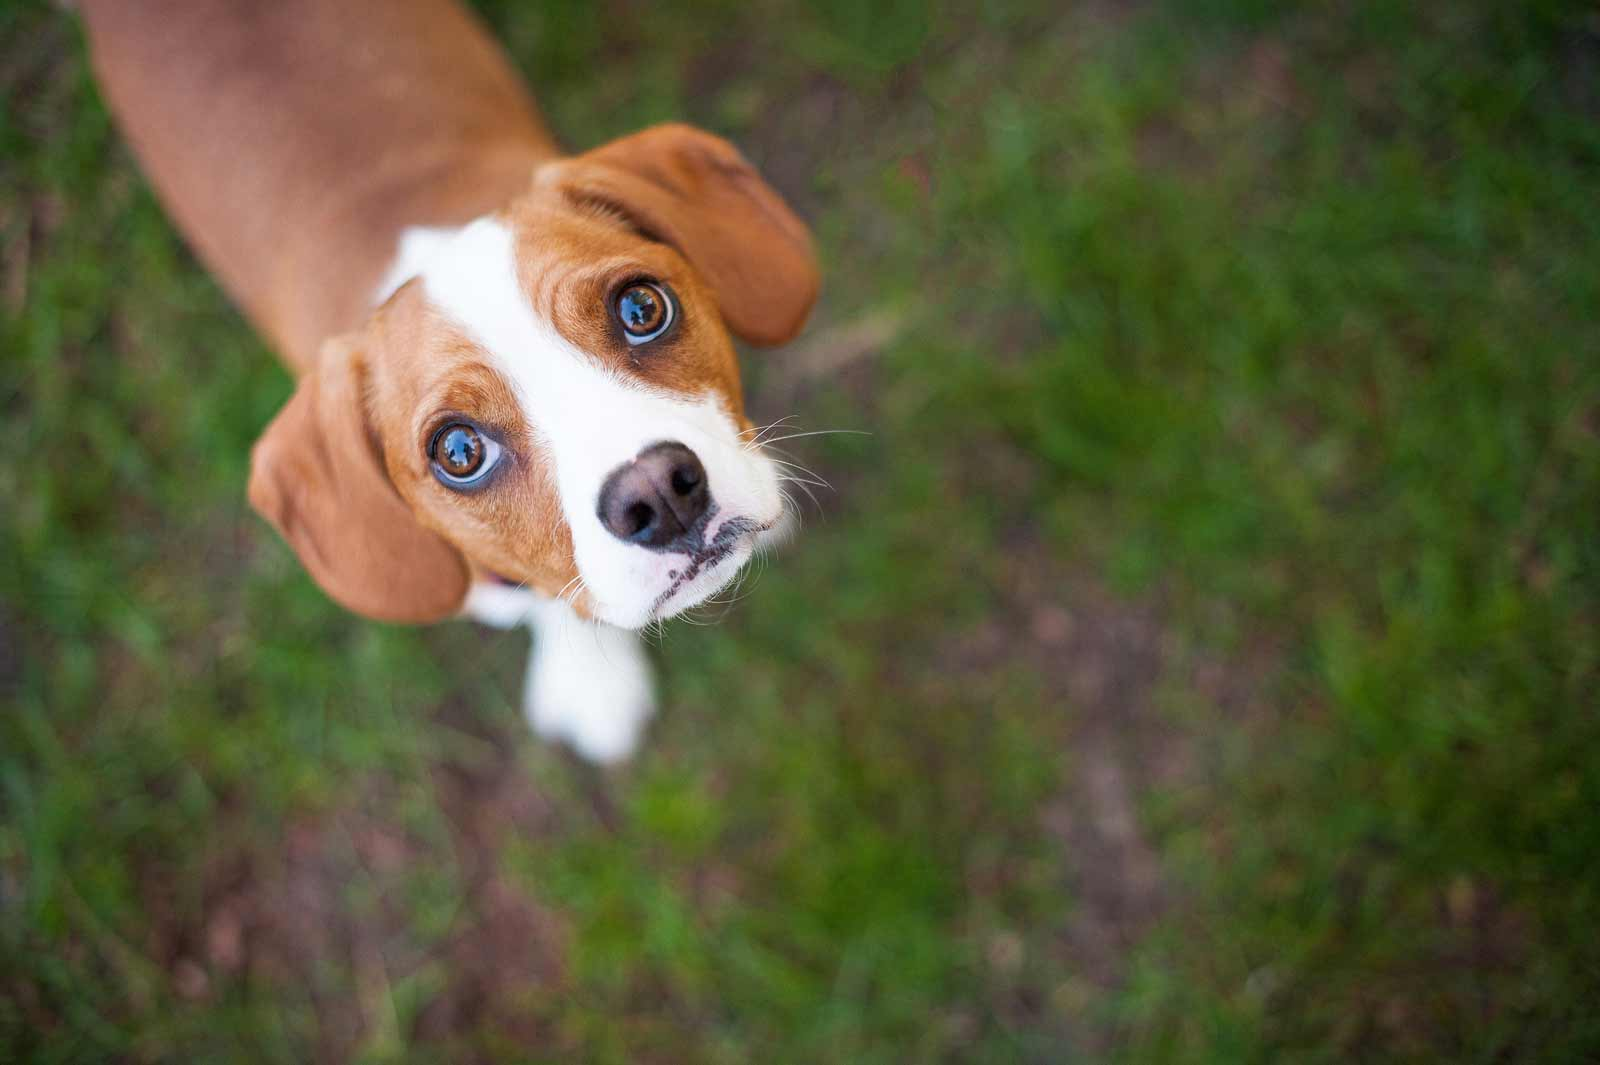 A very cute beagle dog looking up at the camera at dow's lake for his pet session